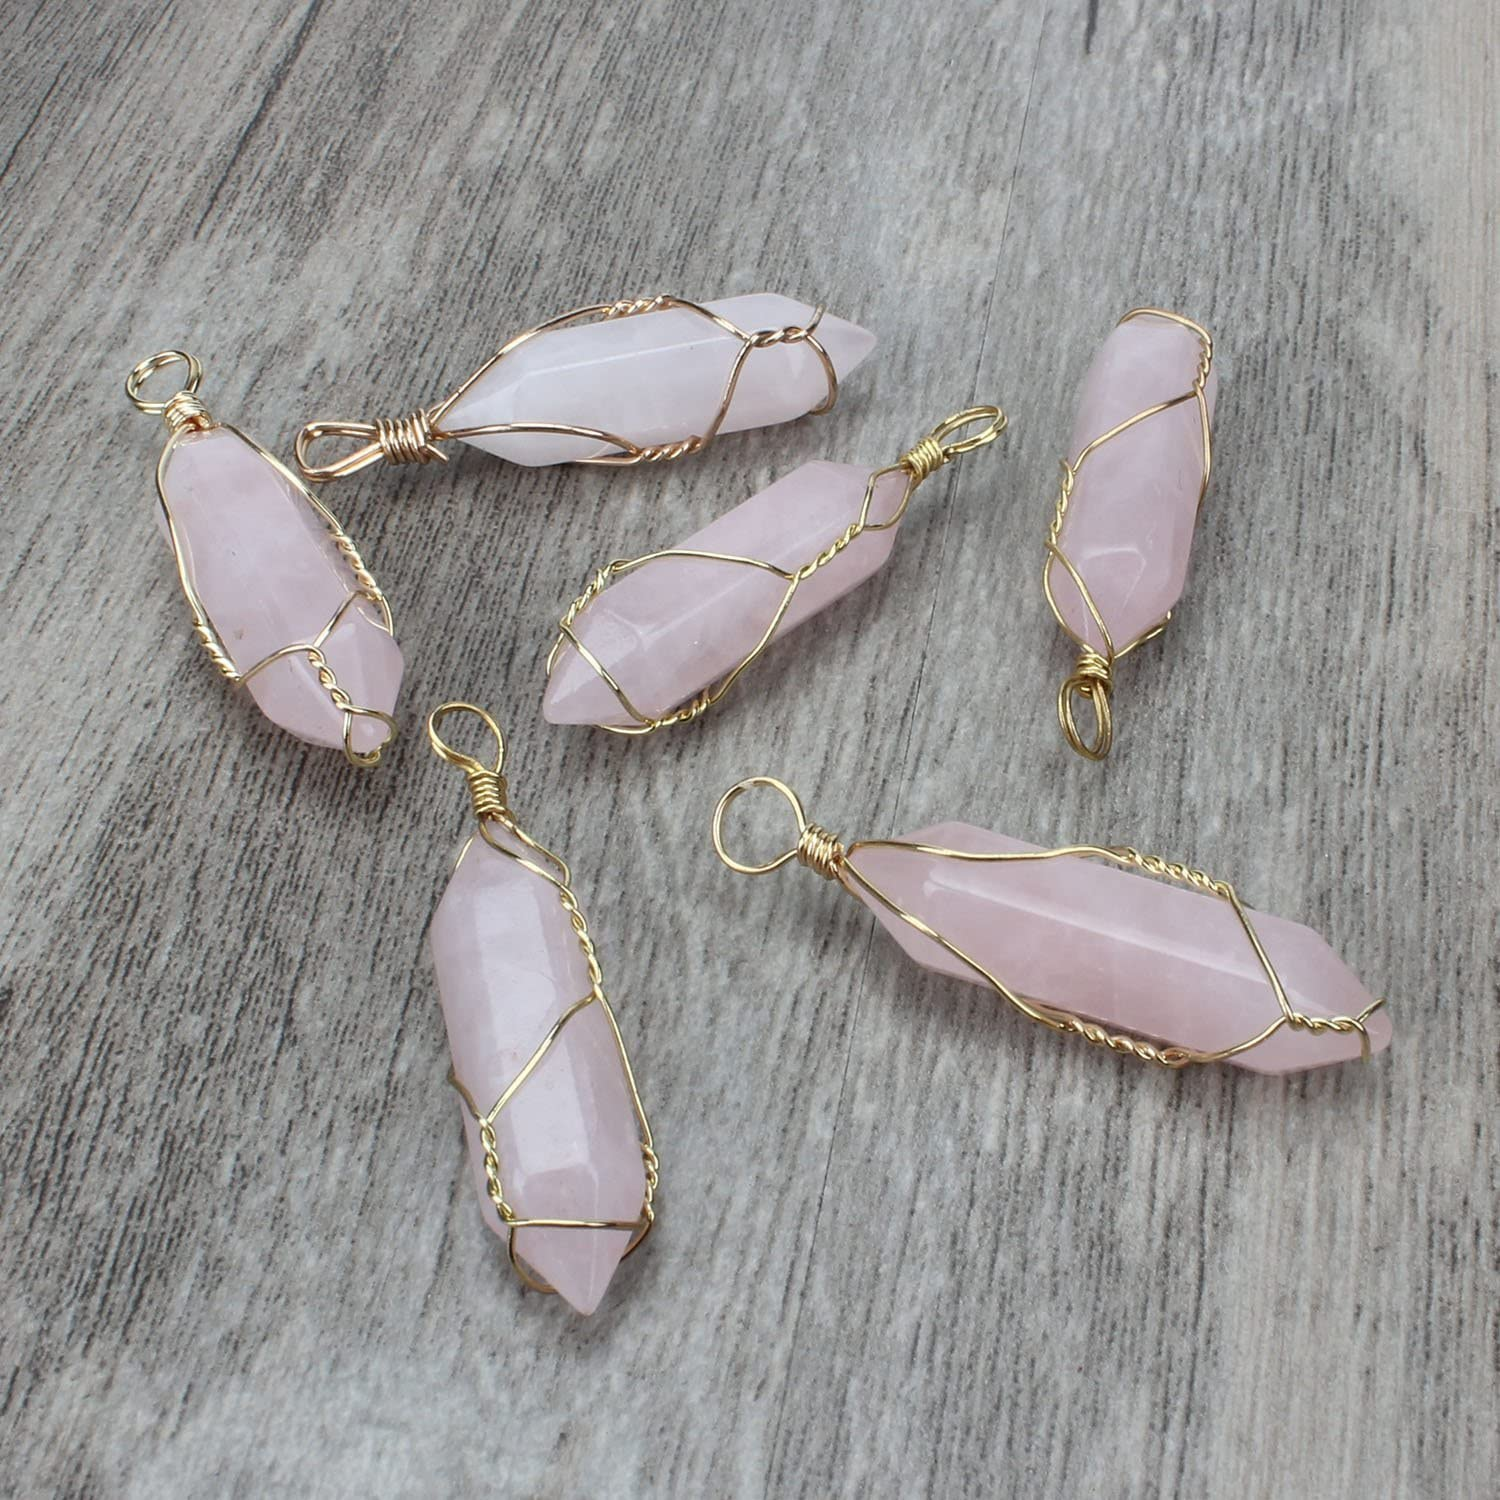 1pc Natural Rose Quartz Square Shape Pendant Gold plating covered DIY Jewelry making supplies